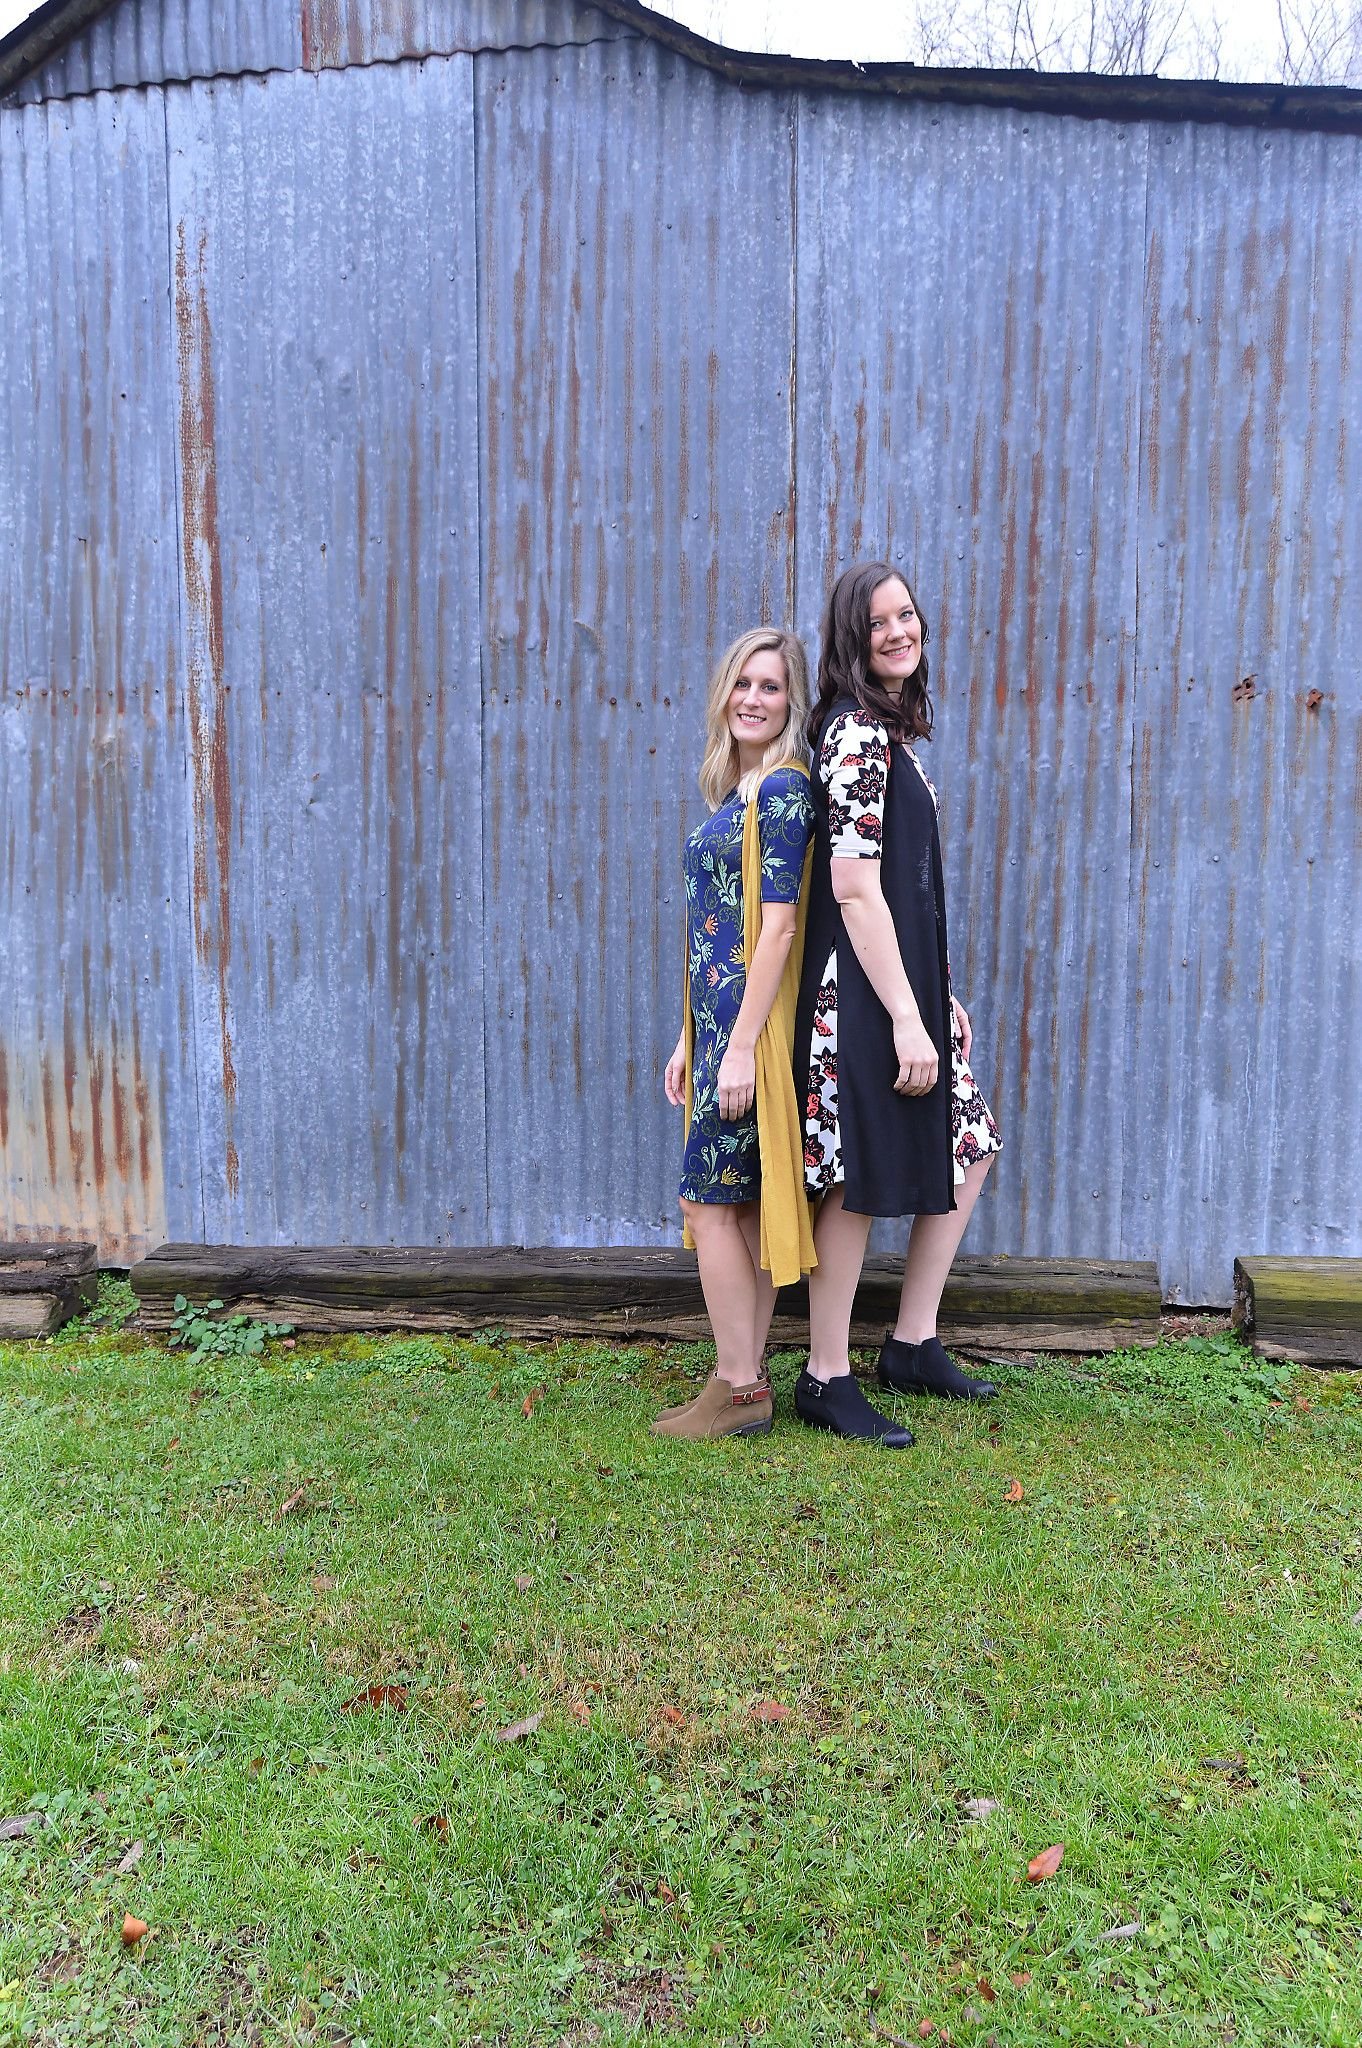 Navy LuLaRoe Julia Dress with scroll print paired with a mustard LuLaRoe Joy.   Black, white, and orange LuLaRoe Nicole dress paired with a black LuLaRoe Joy.   Comfort and beauty at its finest!   #lularoe #lularoejulia #lularoejoy #lularoenicole #style #fashion   *LuLaRoe Besties Katy and Becca